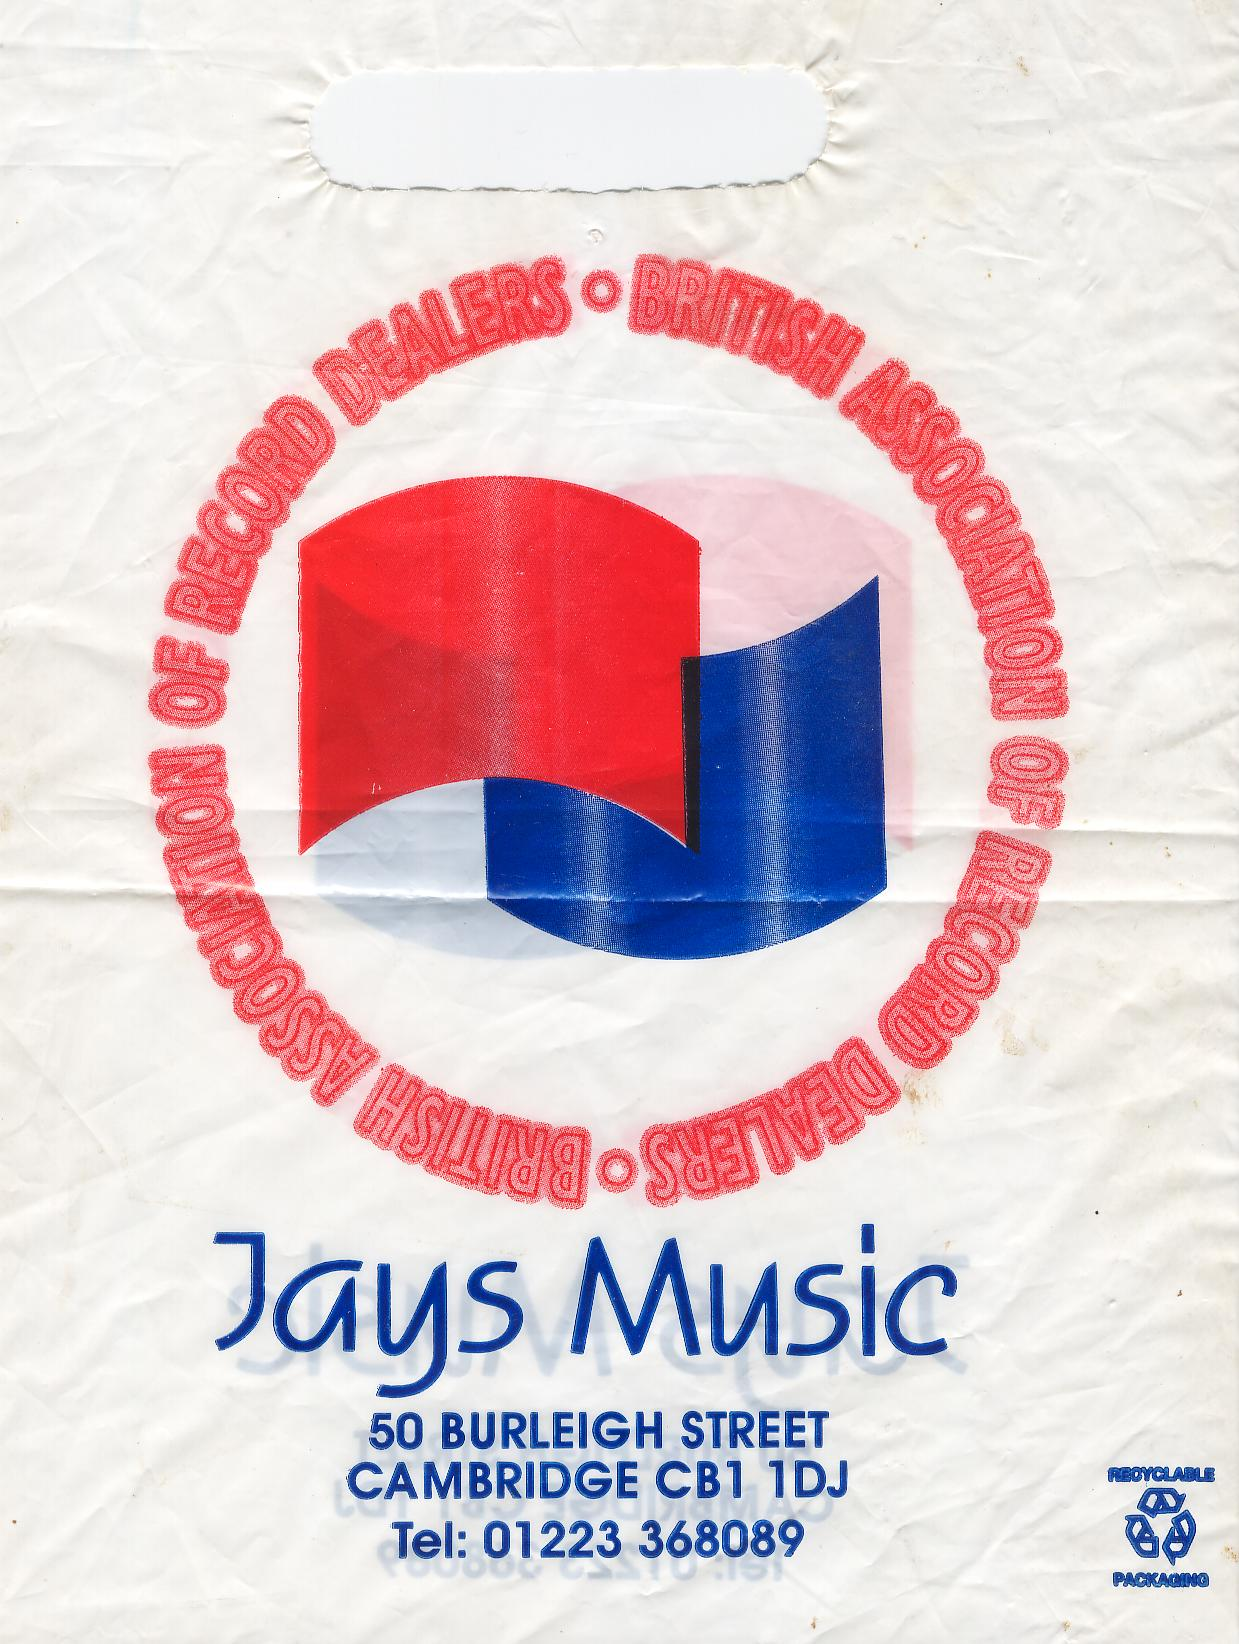 Jays Music Record Shop Cambridge